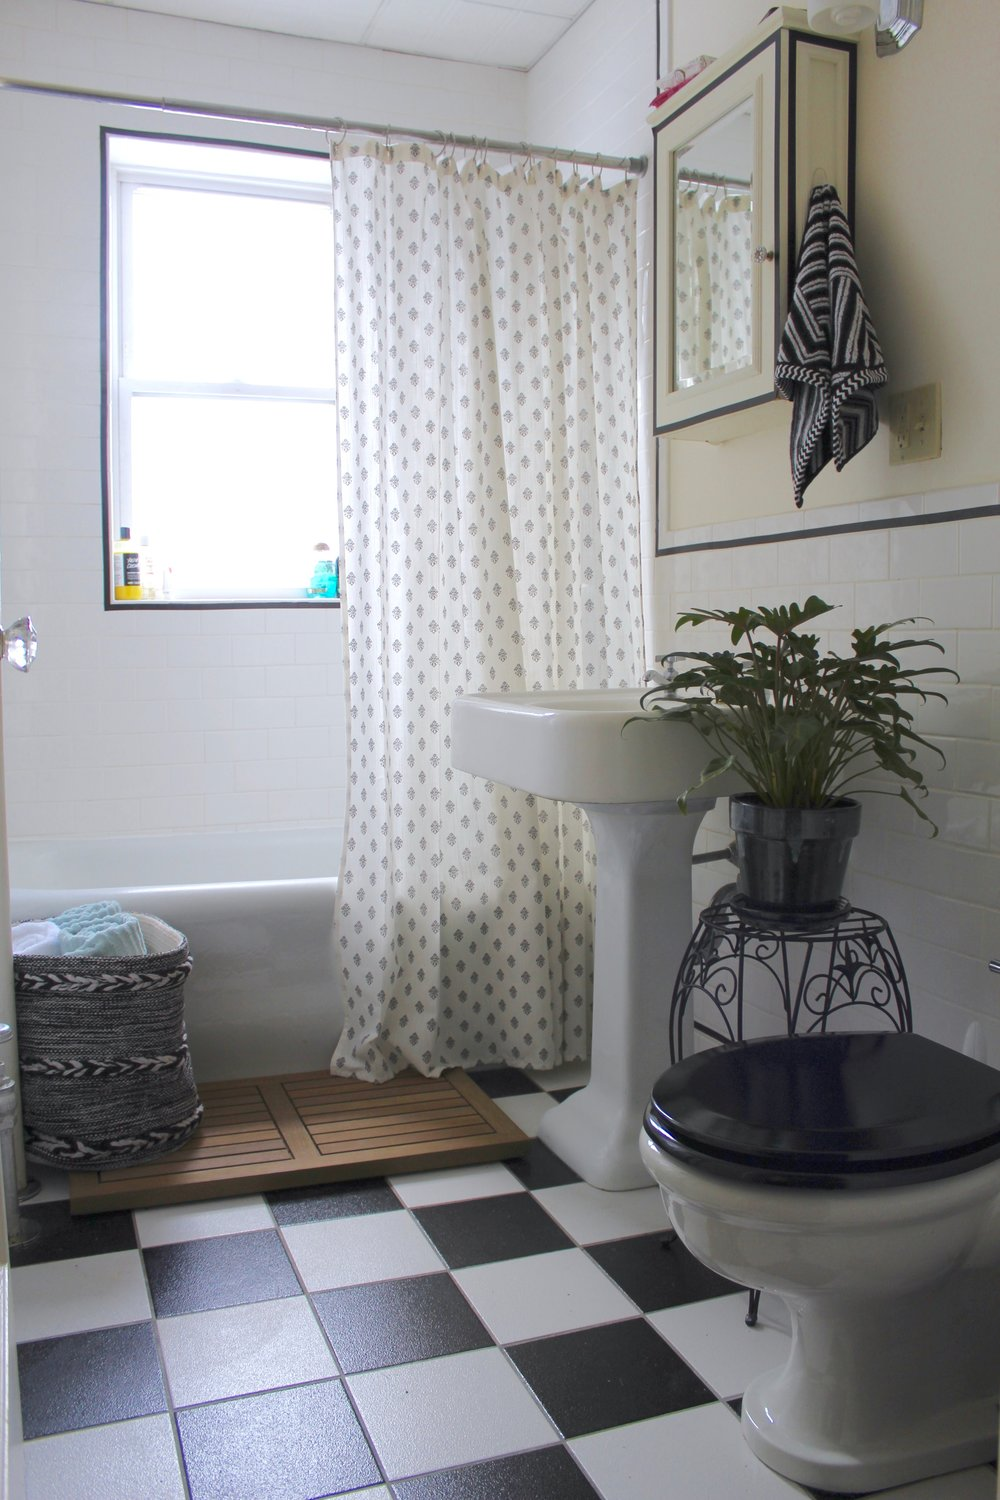 Rental Bathroom Redo — 54 Mazarine